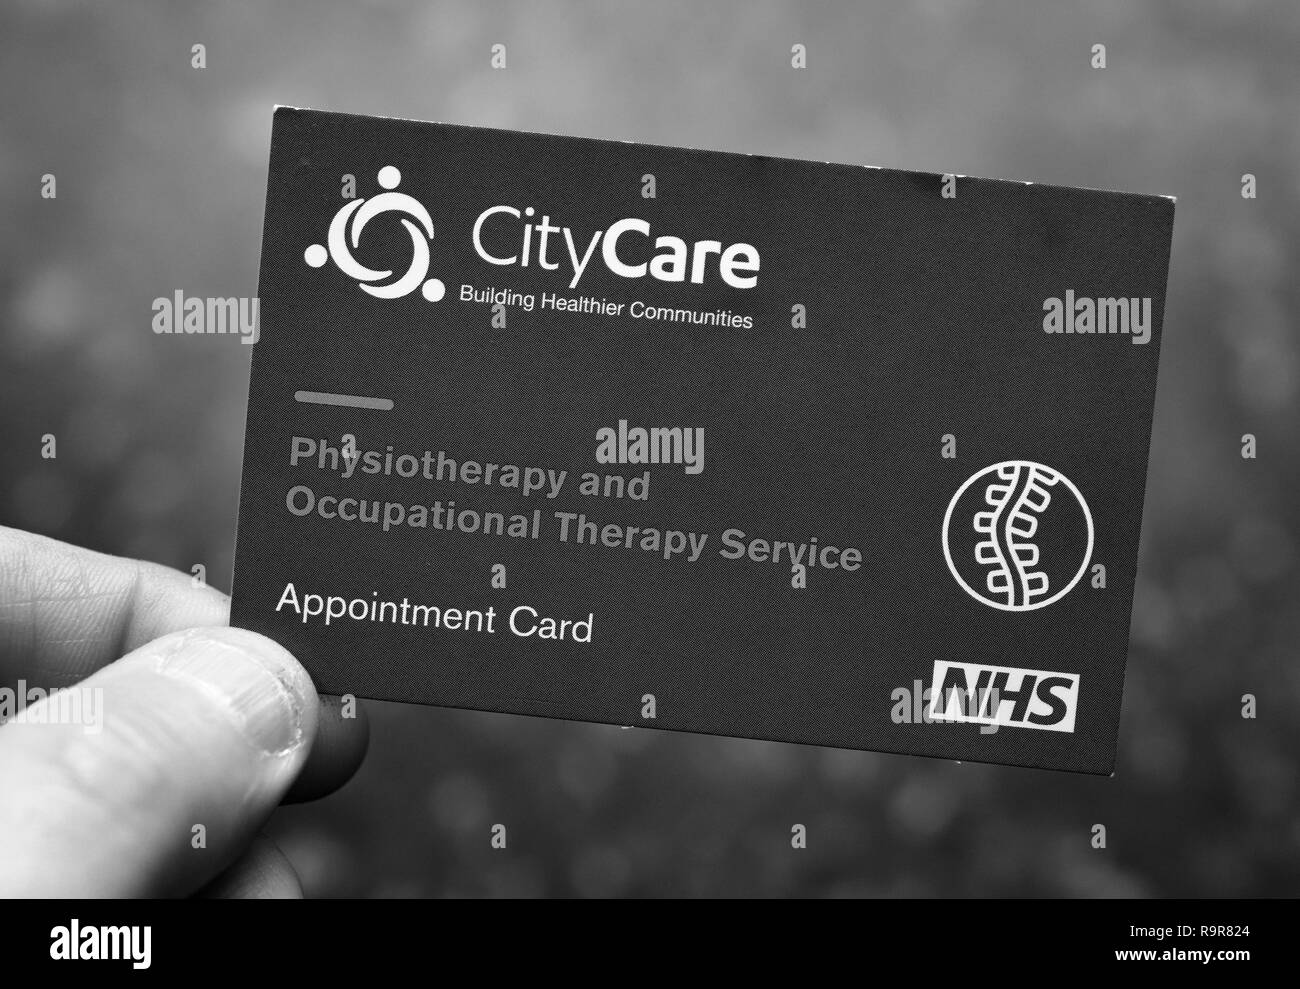 Appointment card for physiotherapy - Stock Image